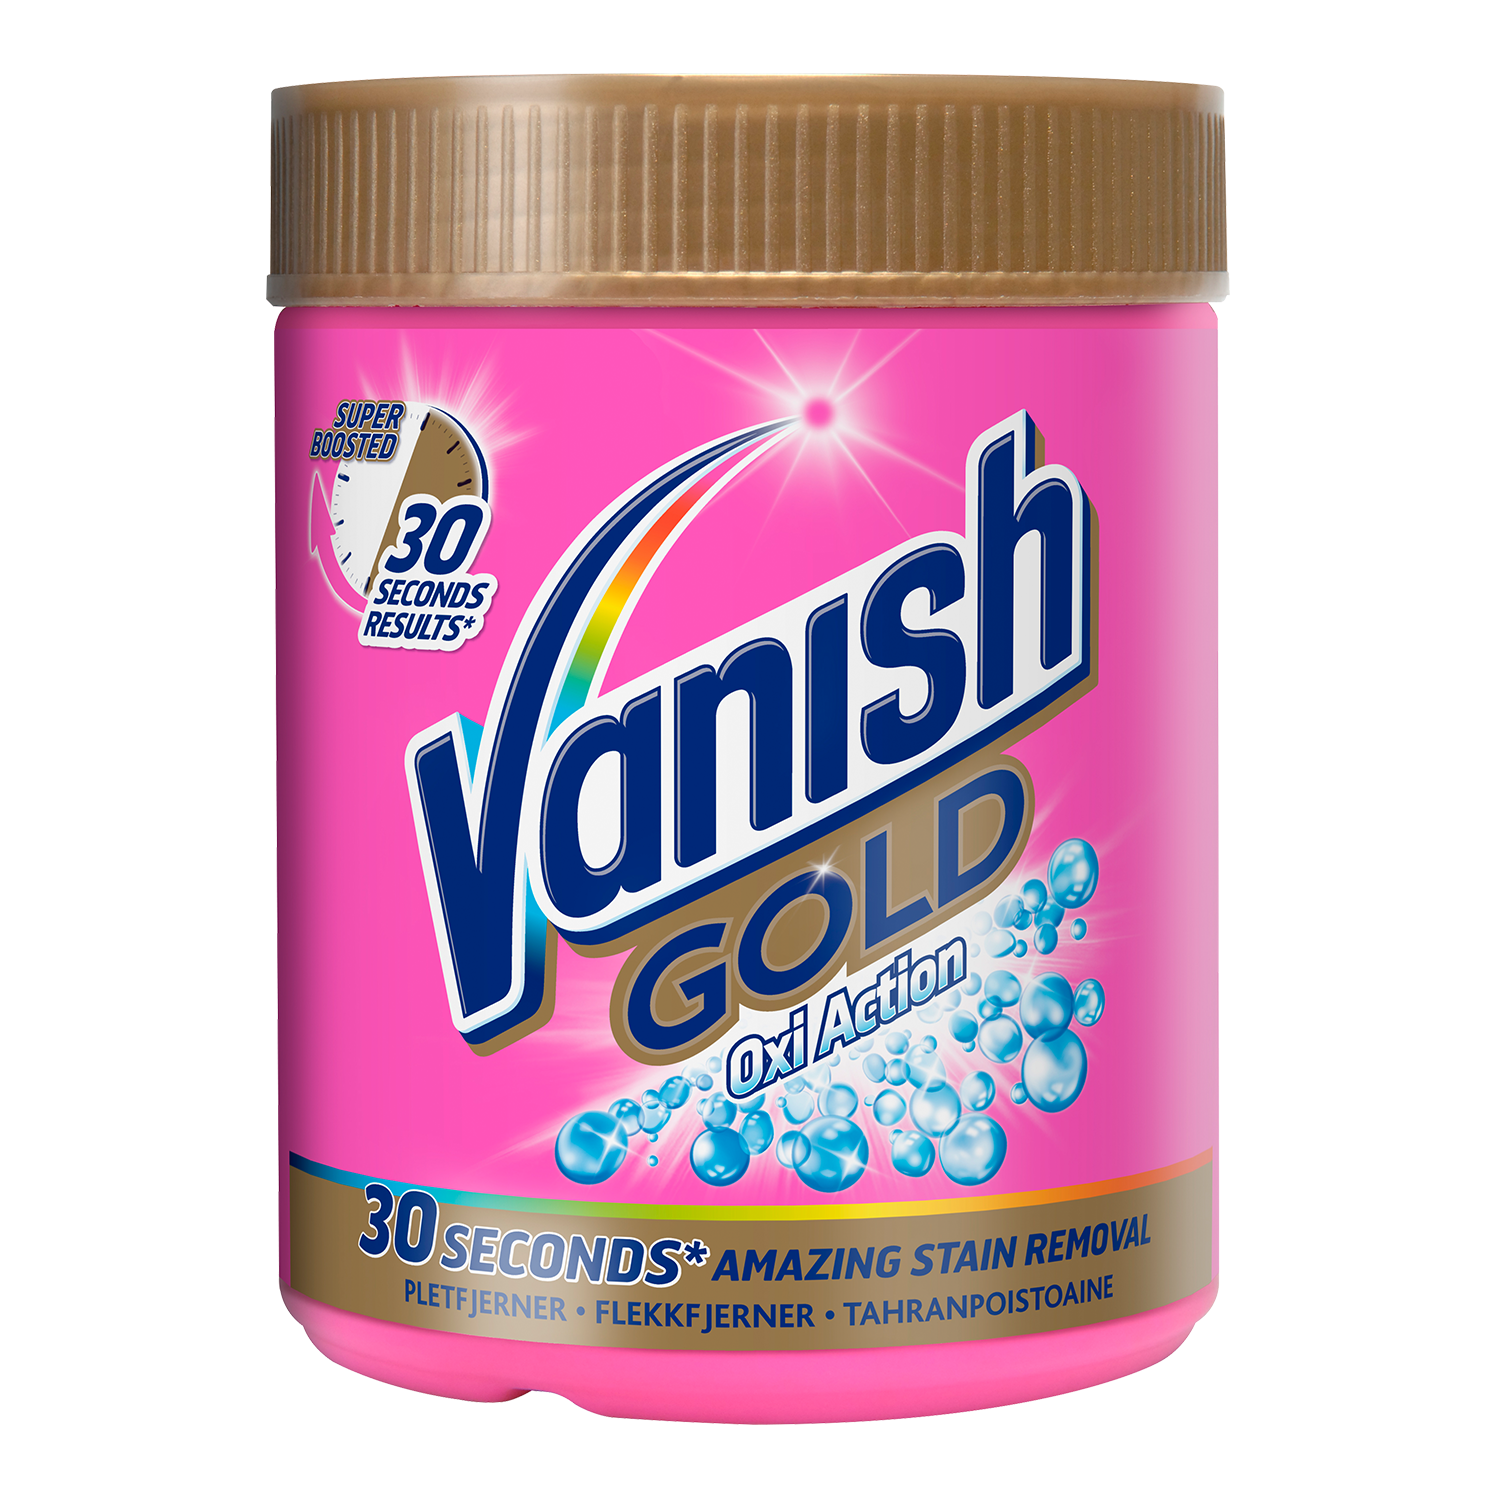 Vanish Gold Oxi Action Pulver